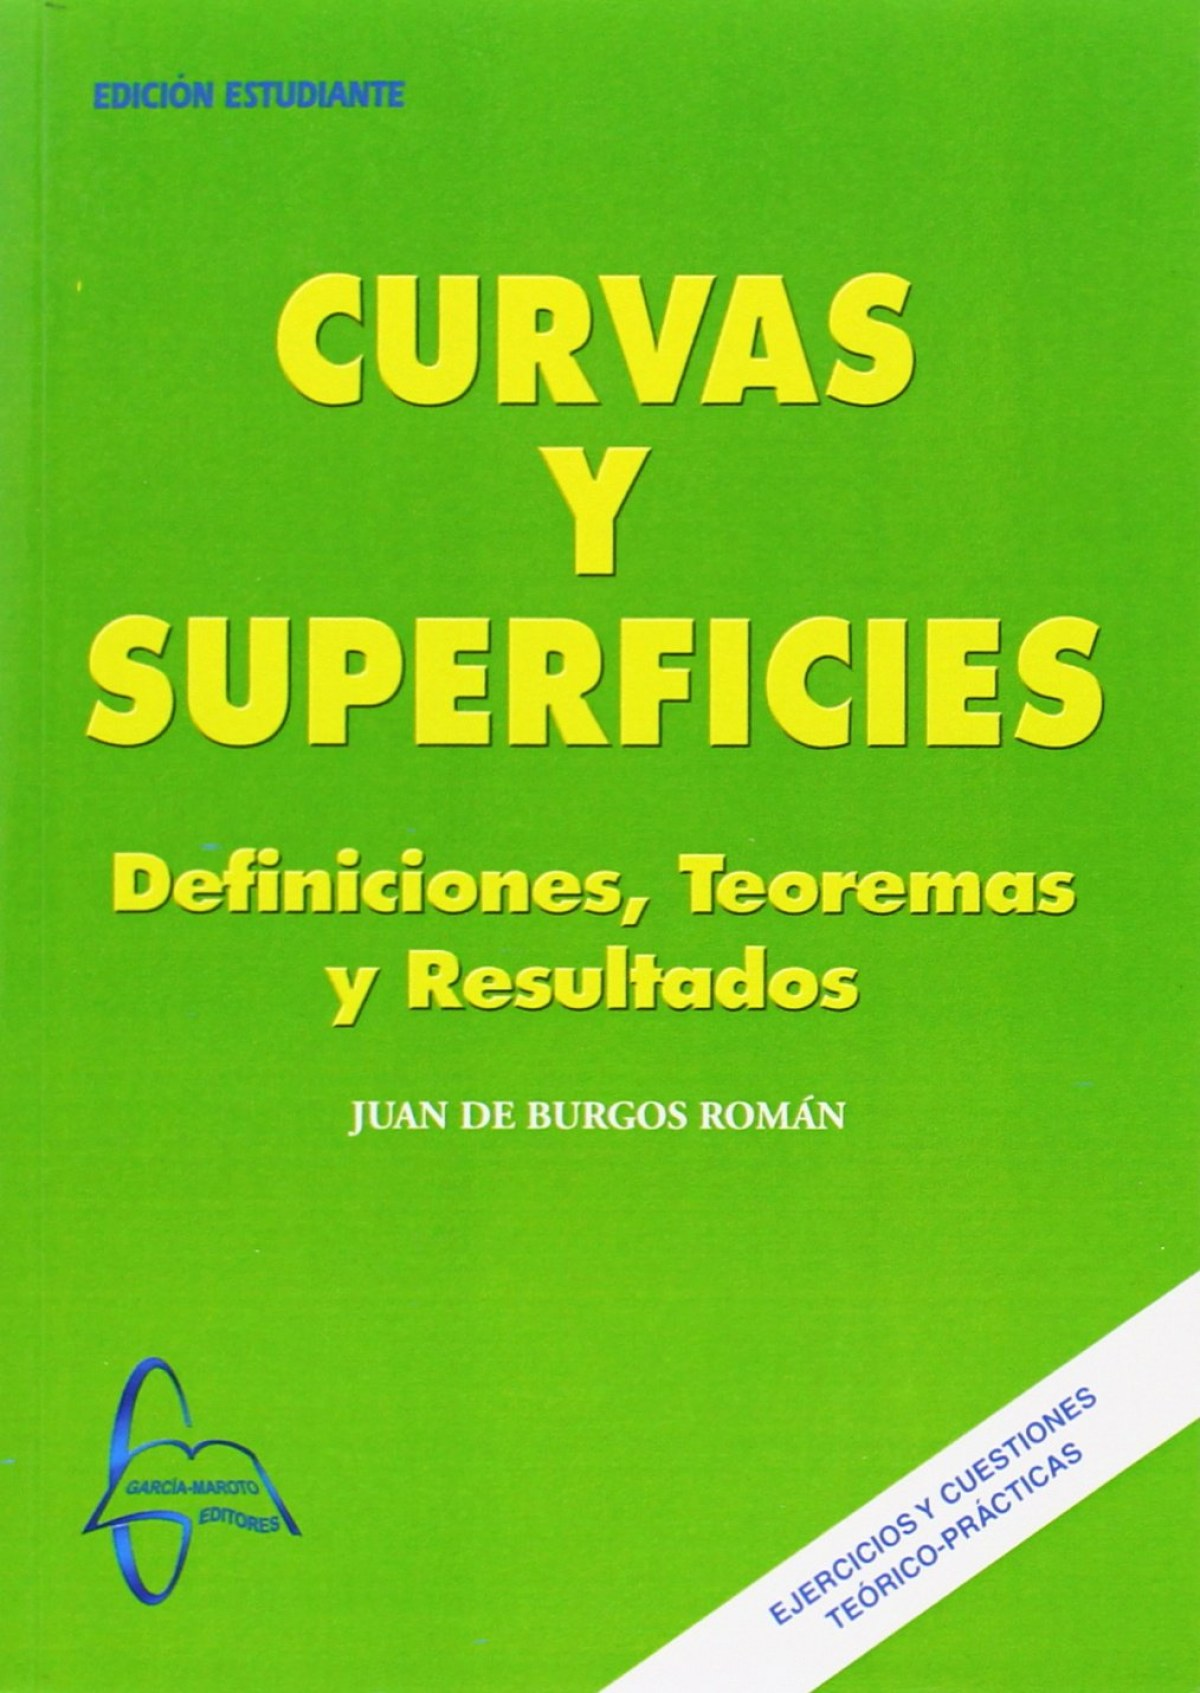 CURVAS Y SUPERFICIES